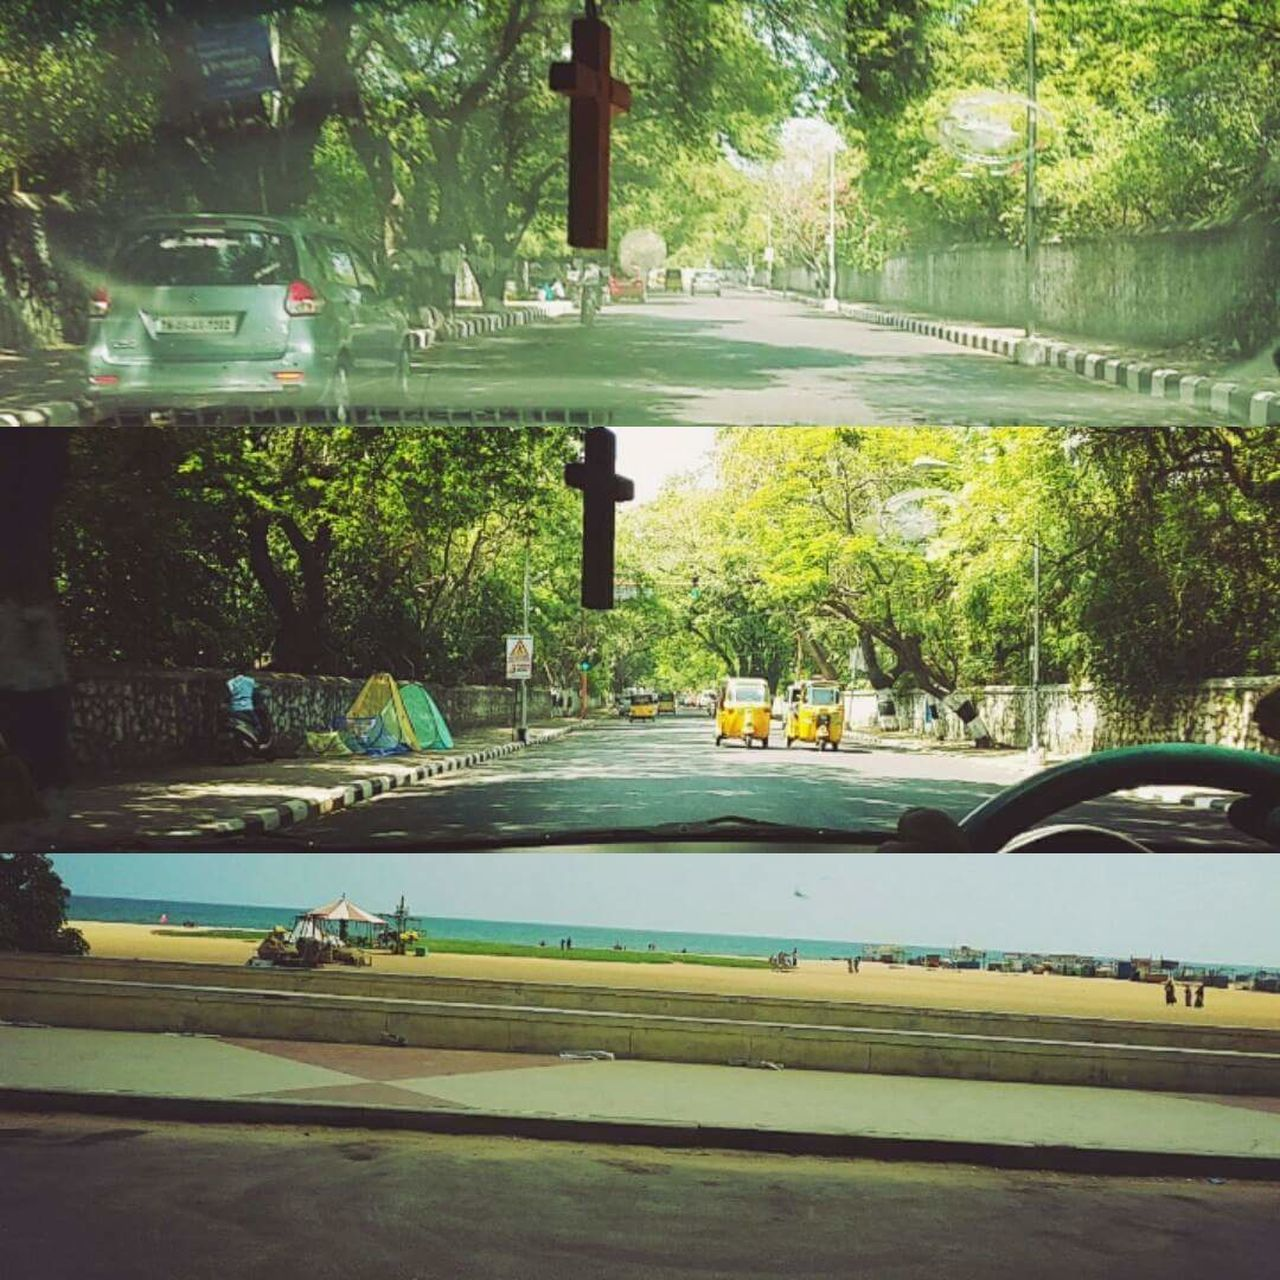 car, tree, transportation, road, street, land vehicle, outdoors, no people, day, bridge - man made structure, nature, growth, city, architecture, water